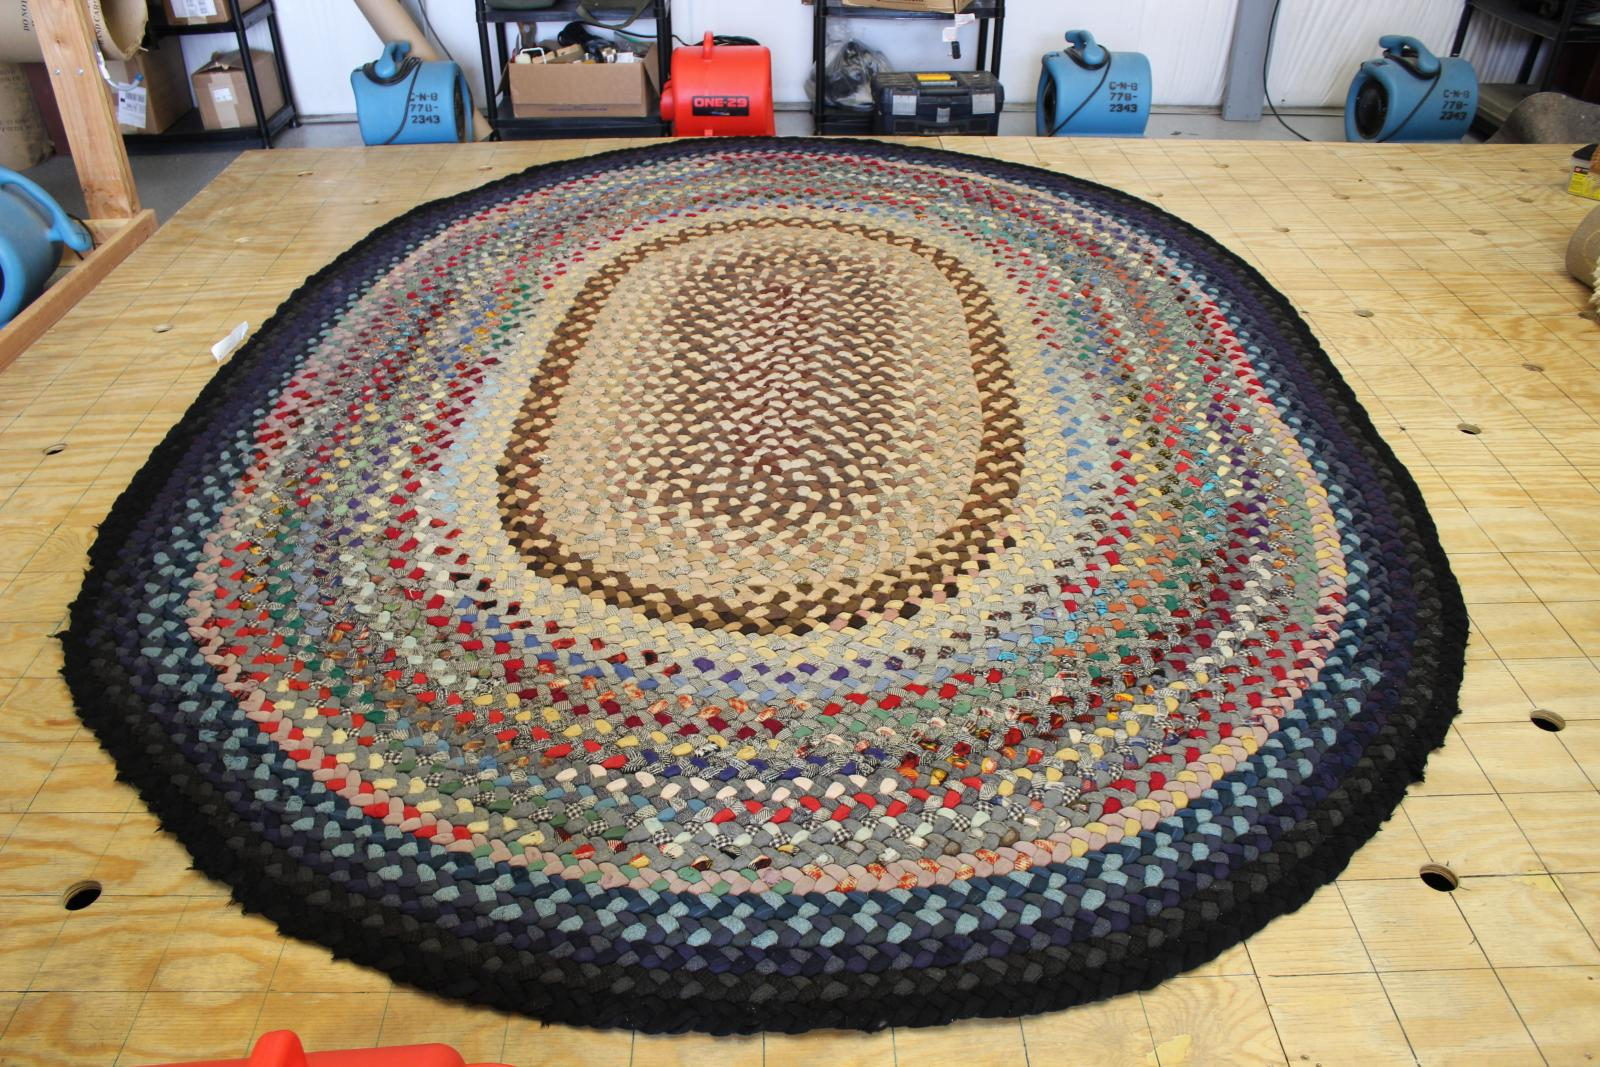 What To Do With A Braided Rug That Is Falling Apart